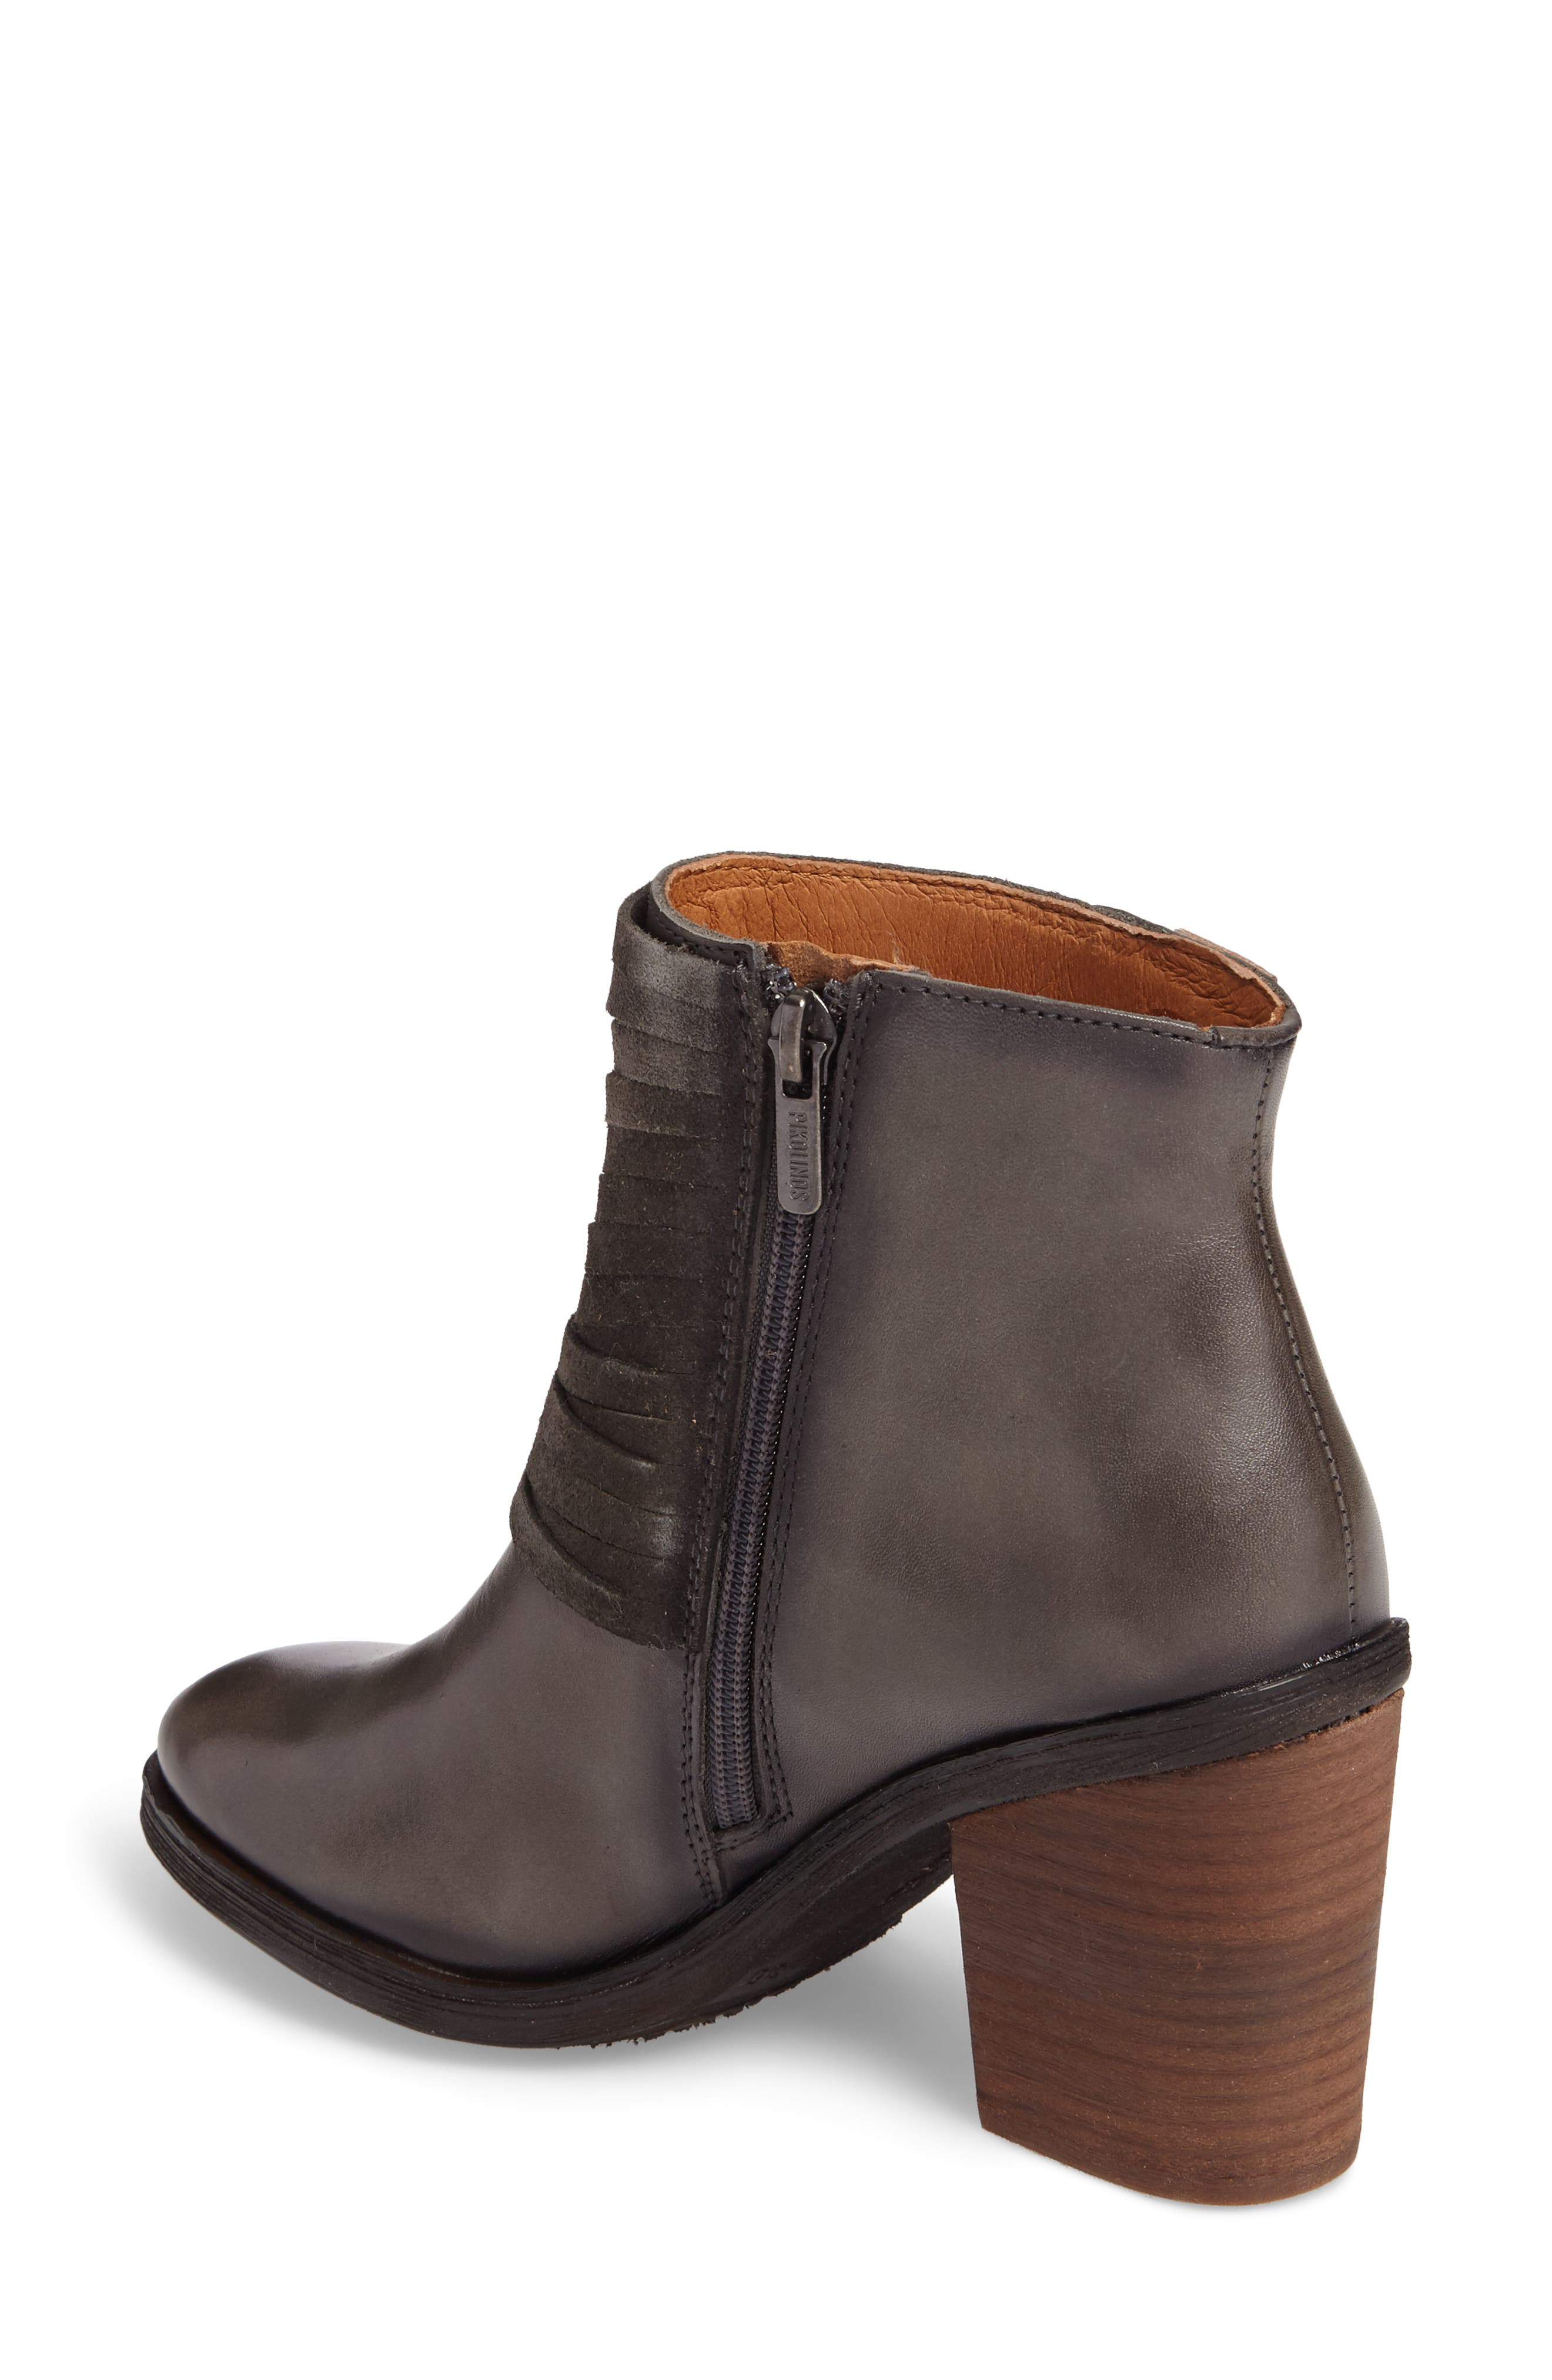 Alicante Bootie,                             Alternate thumbnail 2, color,                             020